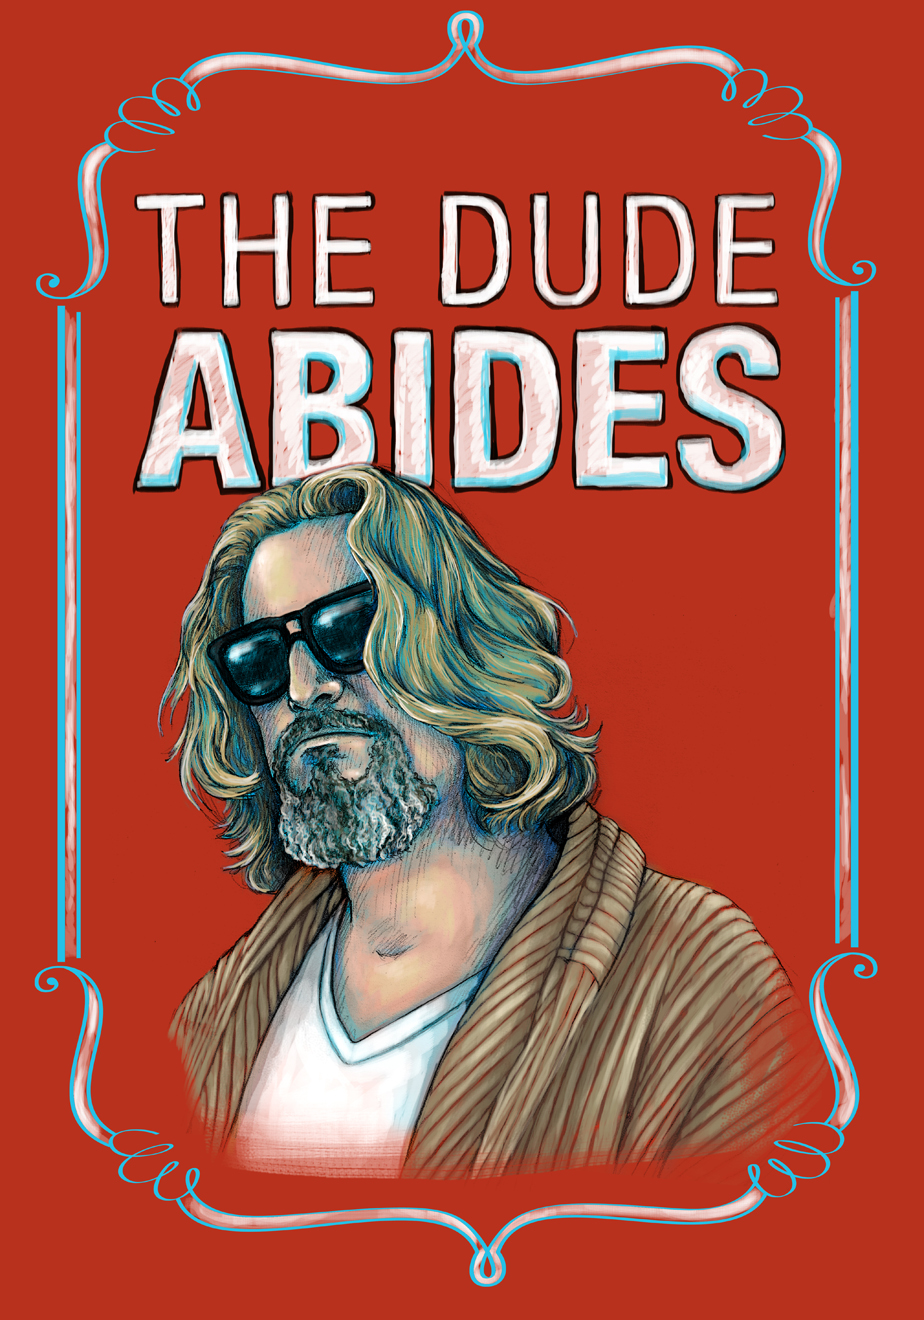 """The Dude Abides"" Jeffrey Lebowski from the Big Lebowski"